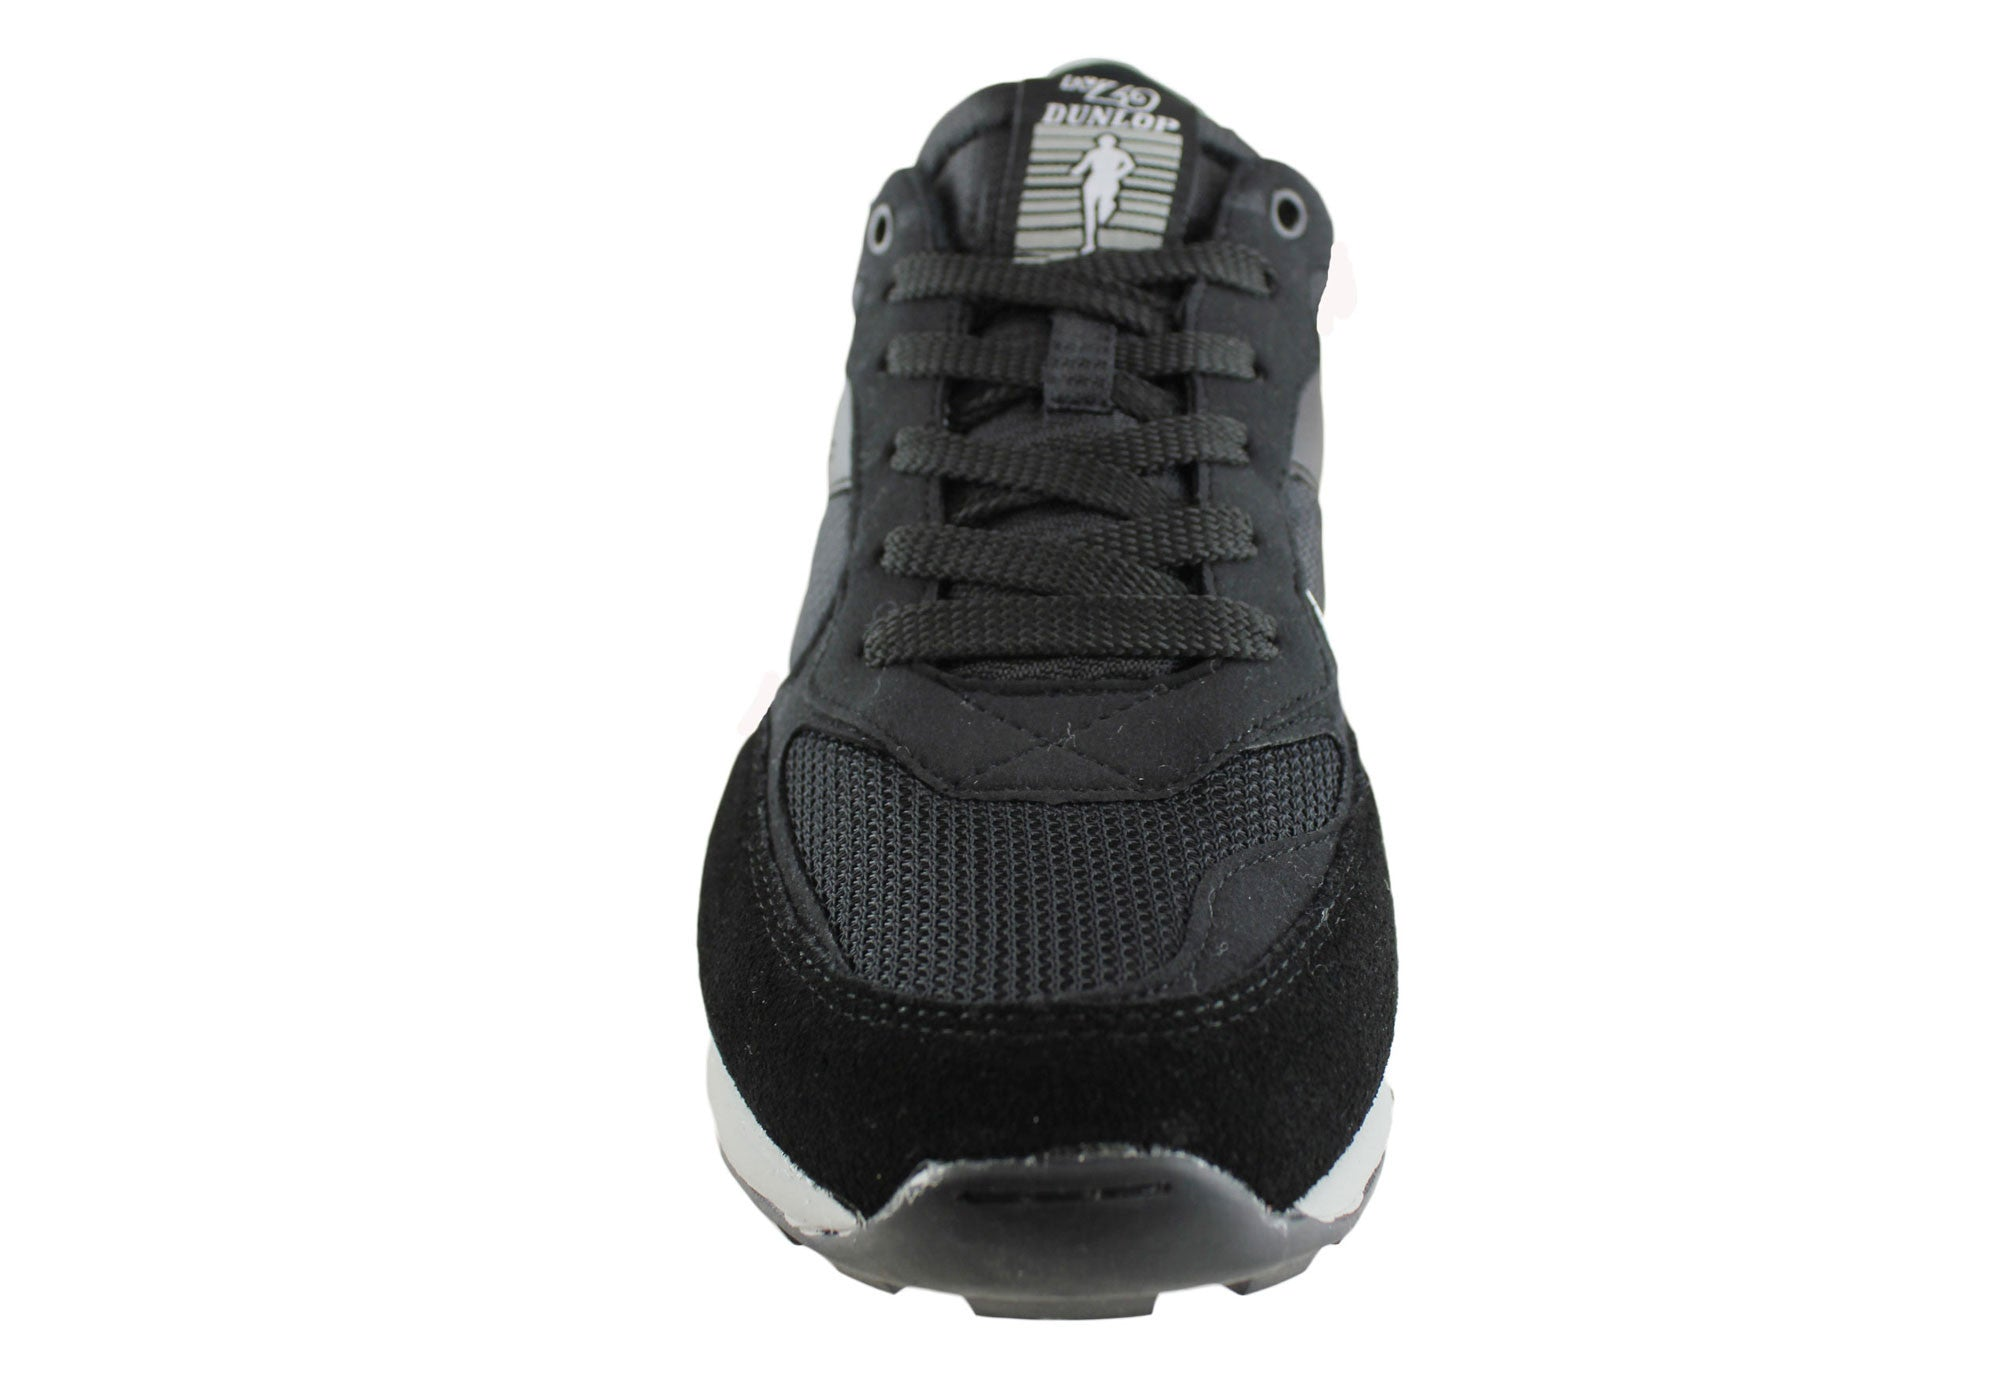 Dunlop KT-26 Mens Sports Lace Up Shoes